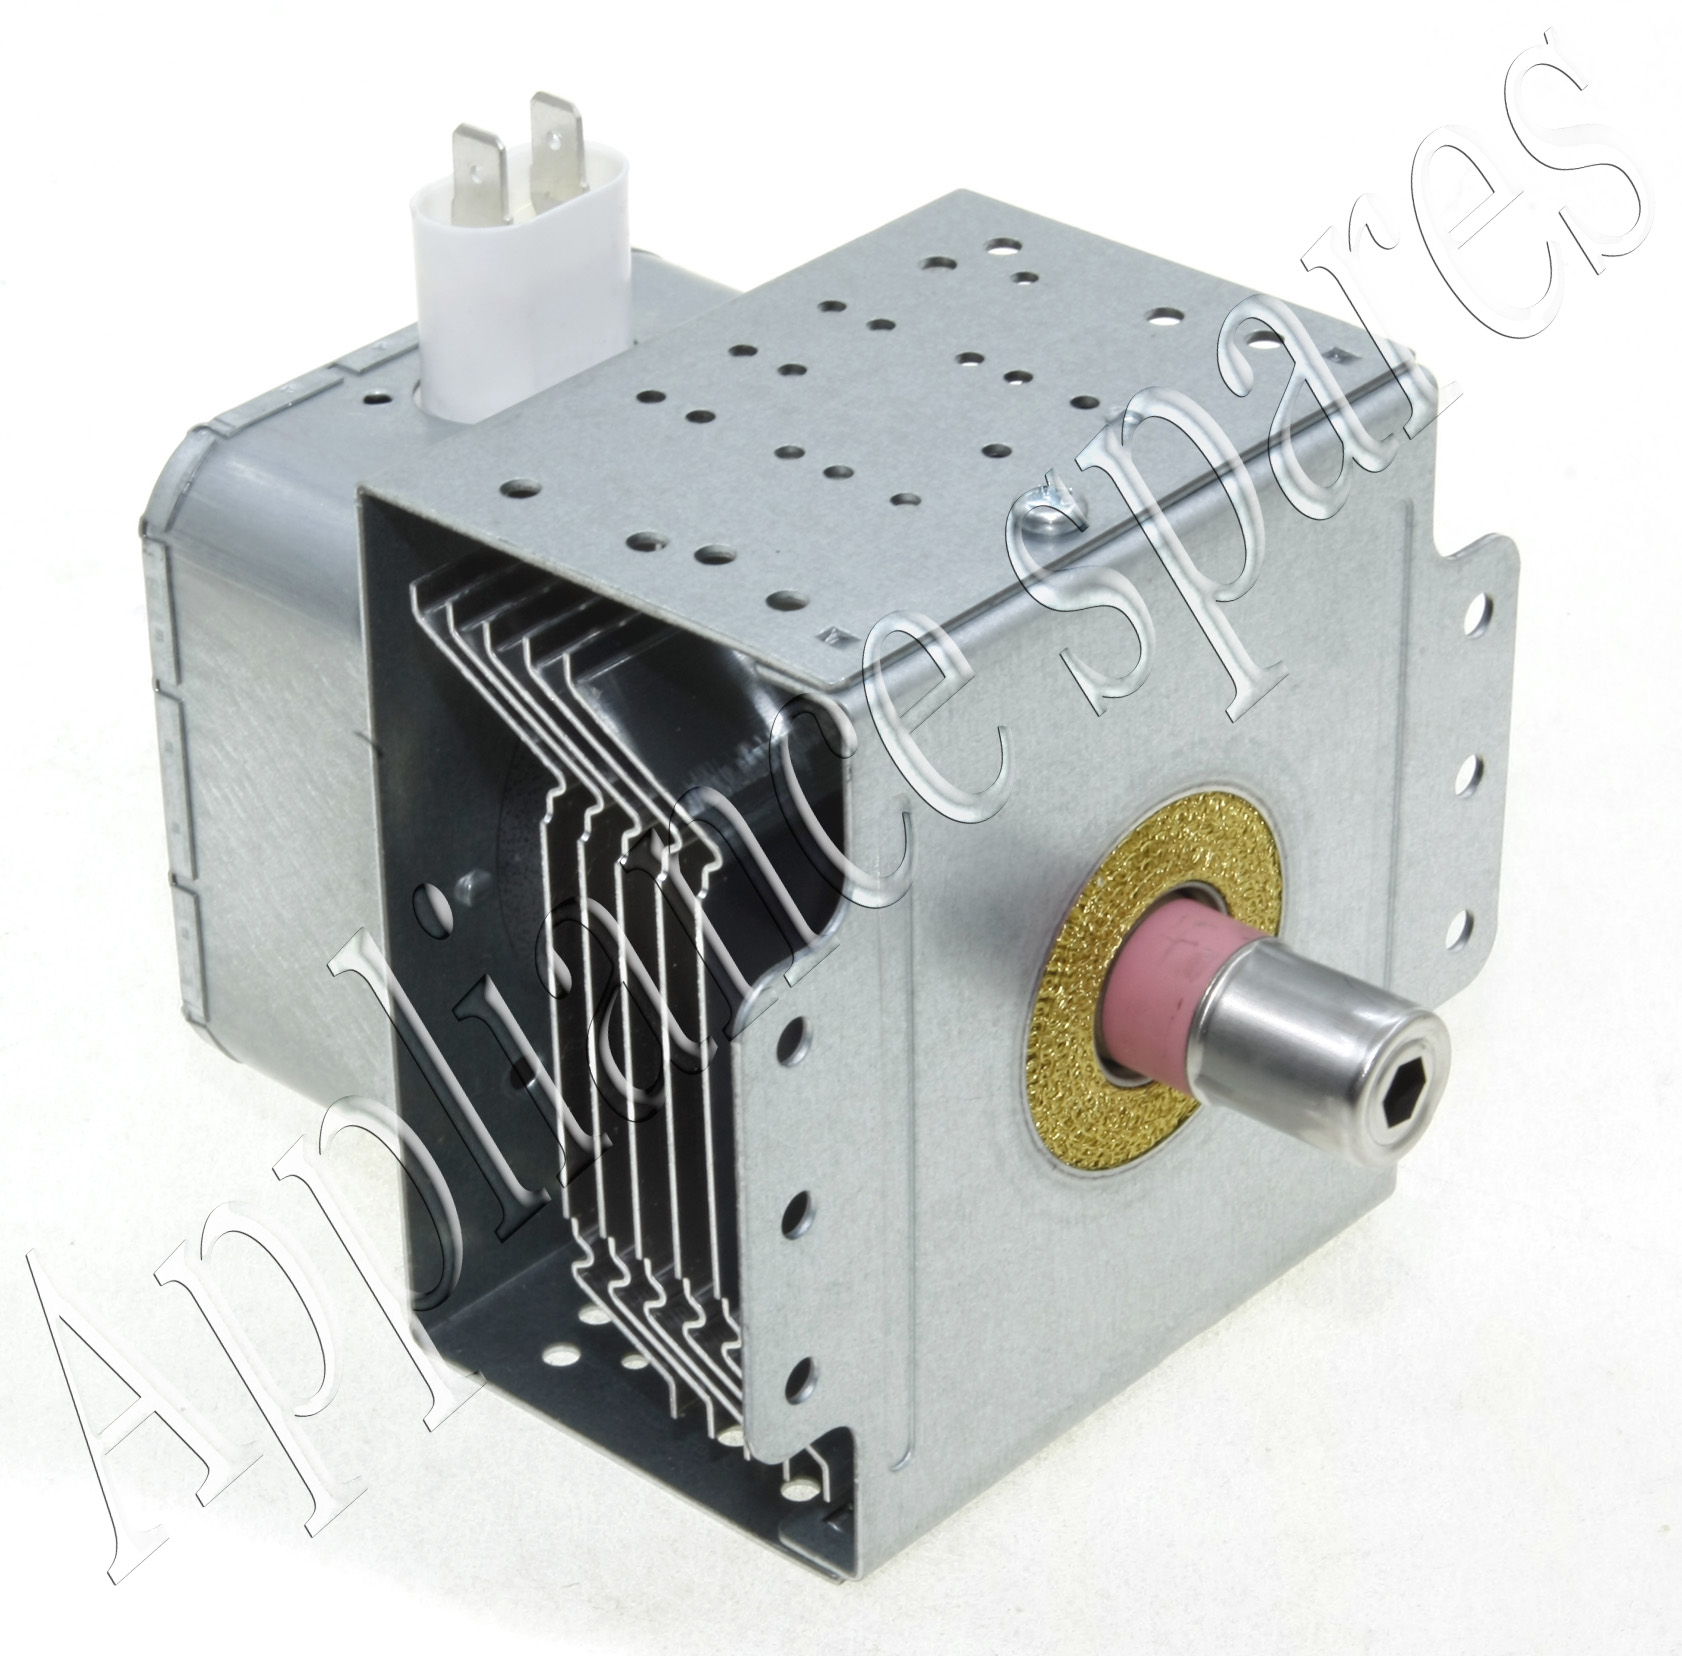 Microwave Oven Magnetron ~ Kelvinator microwave oven magnetron lategan and van